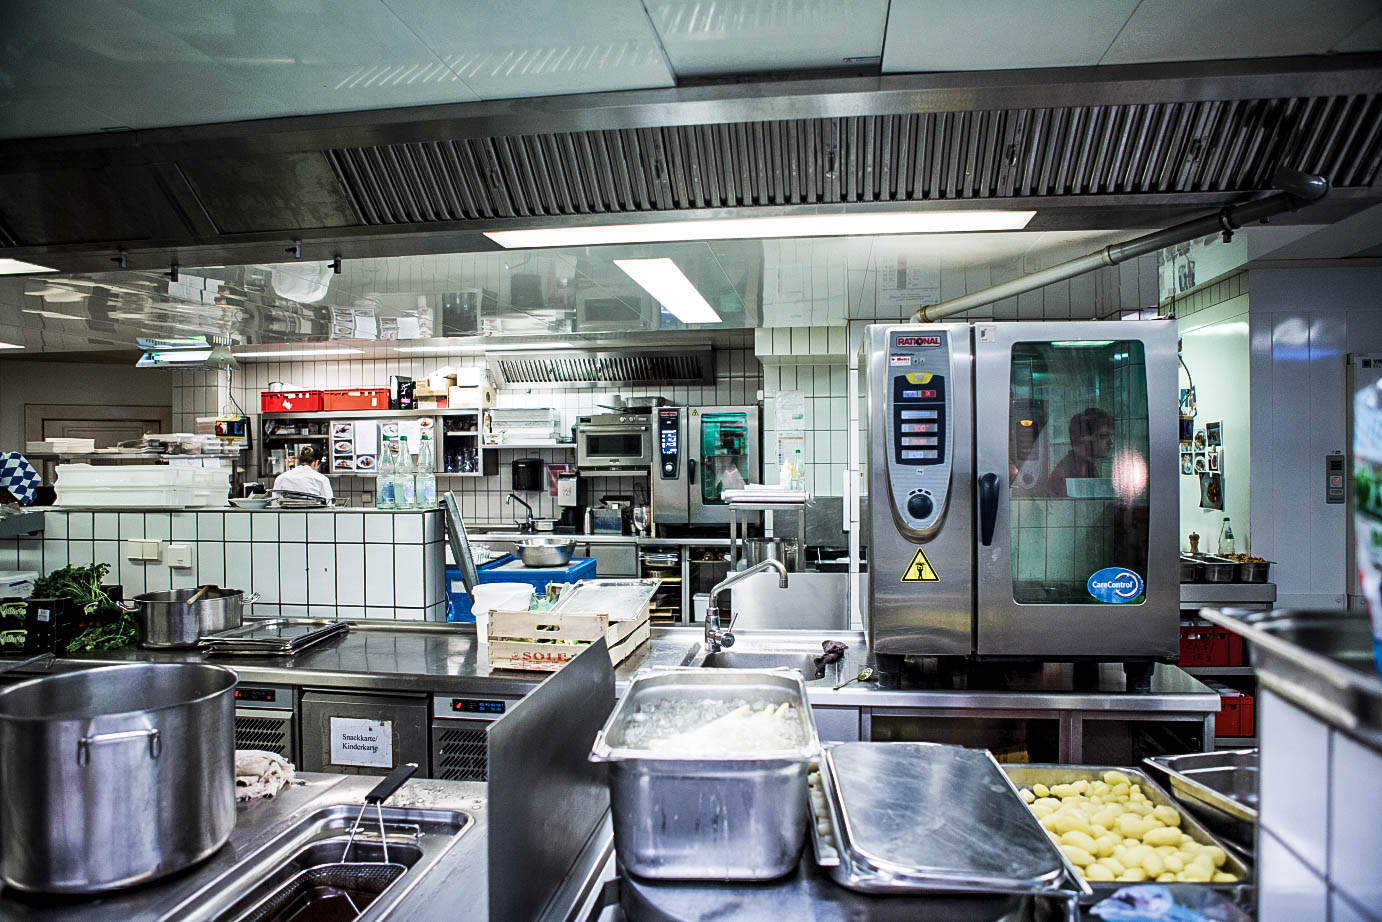 Full House Empty Kitchens About Skilled Staff Shortages In Restaurants